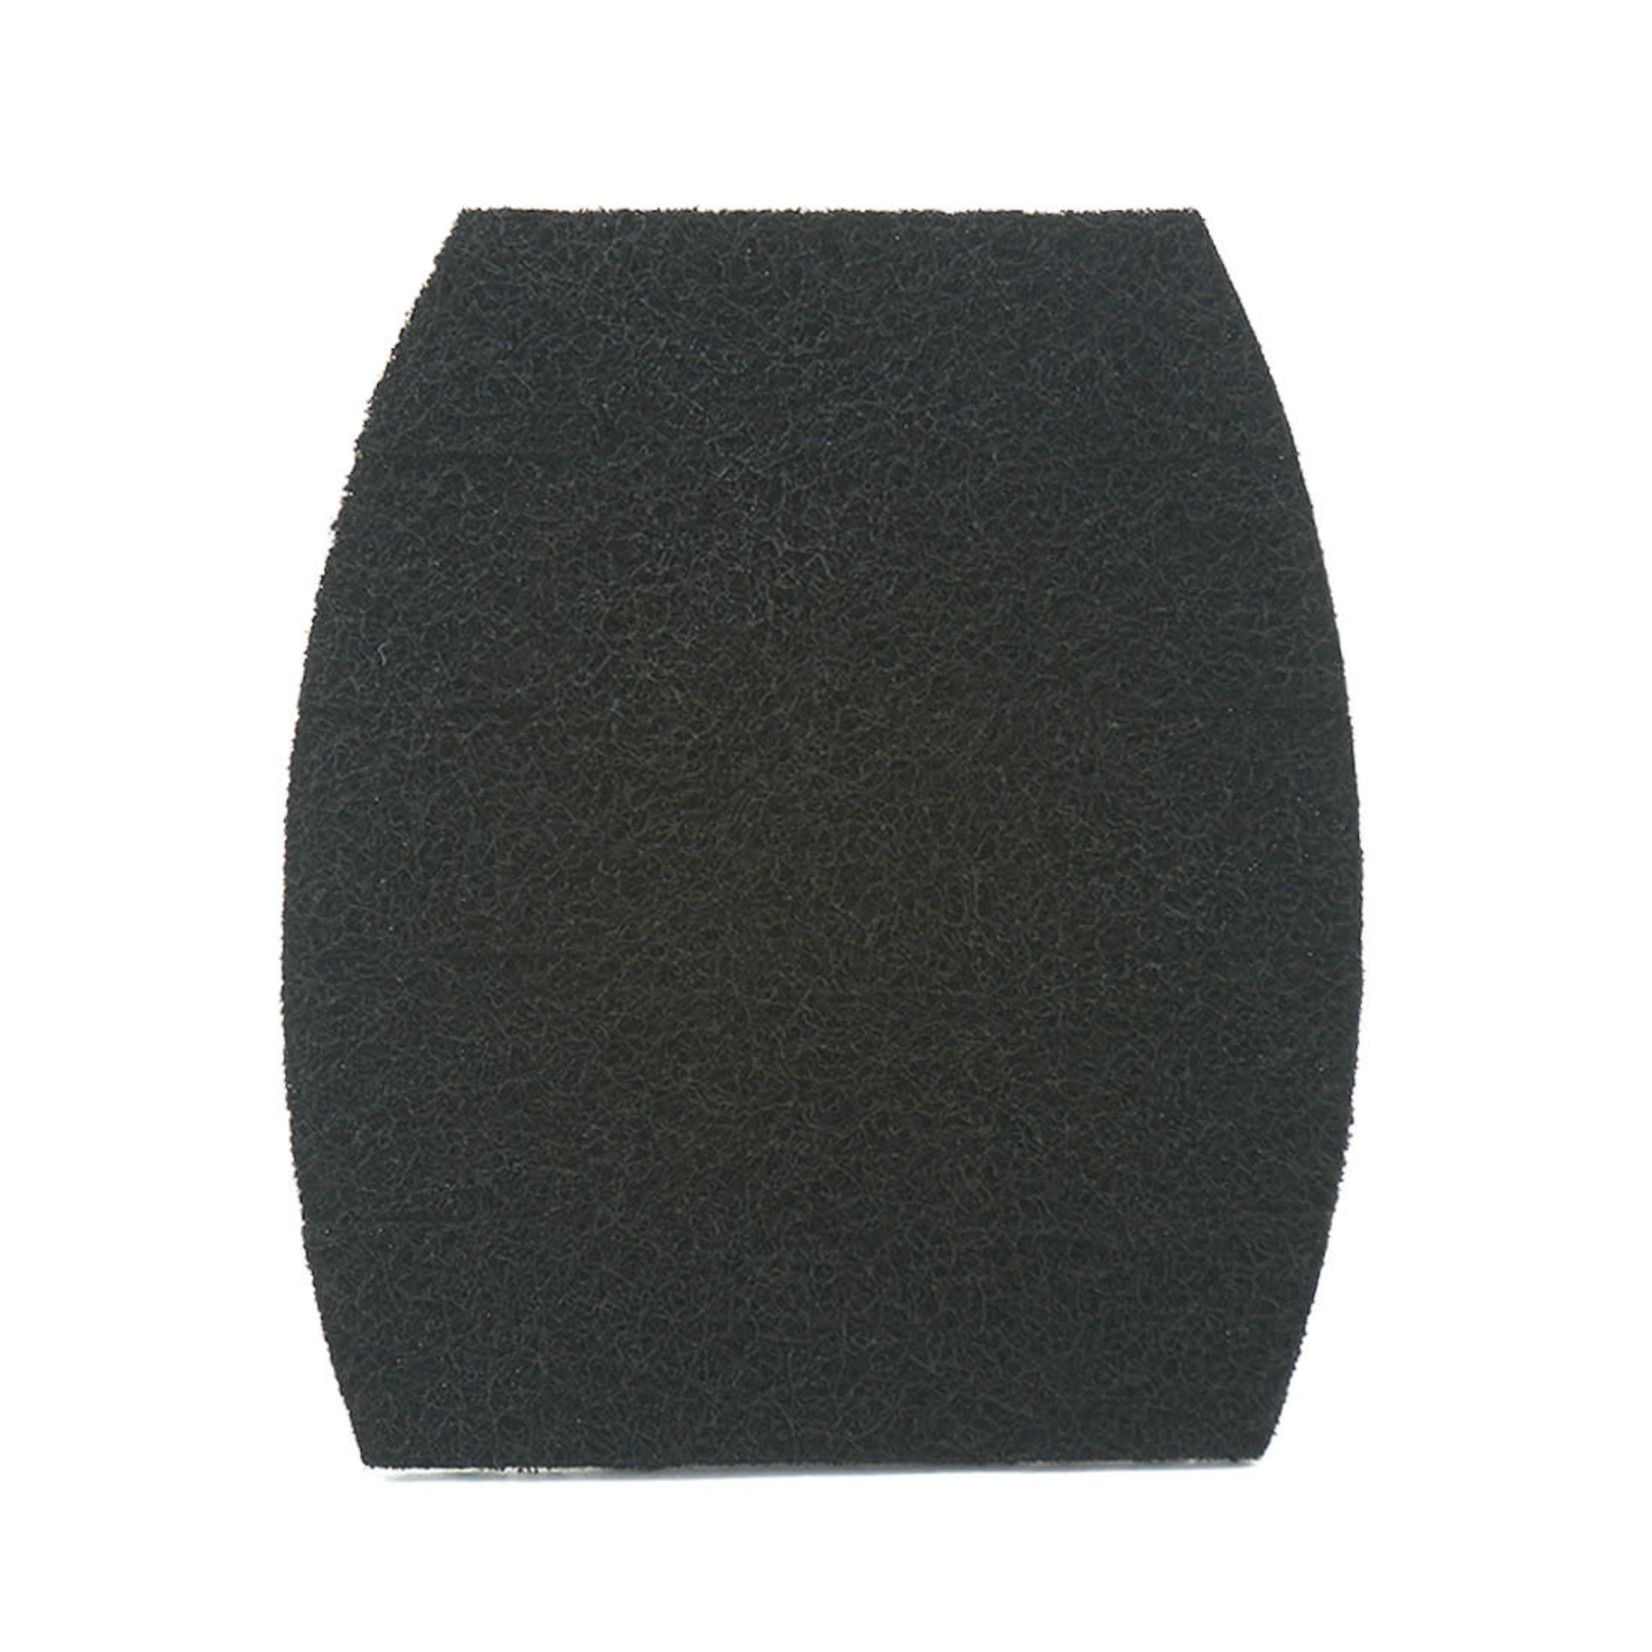 Tacony Copy of Riccar Charcoal Secondary Filter